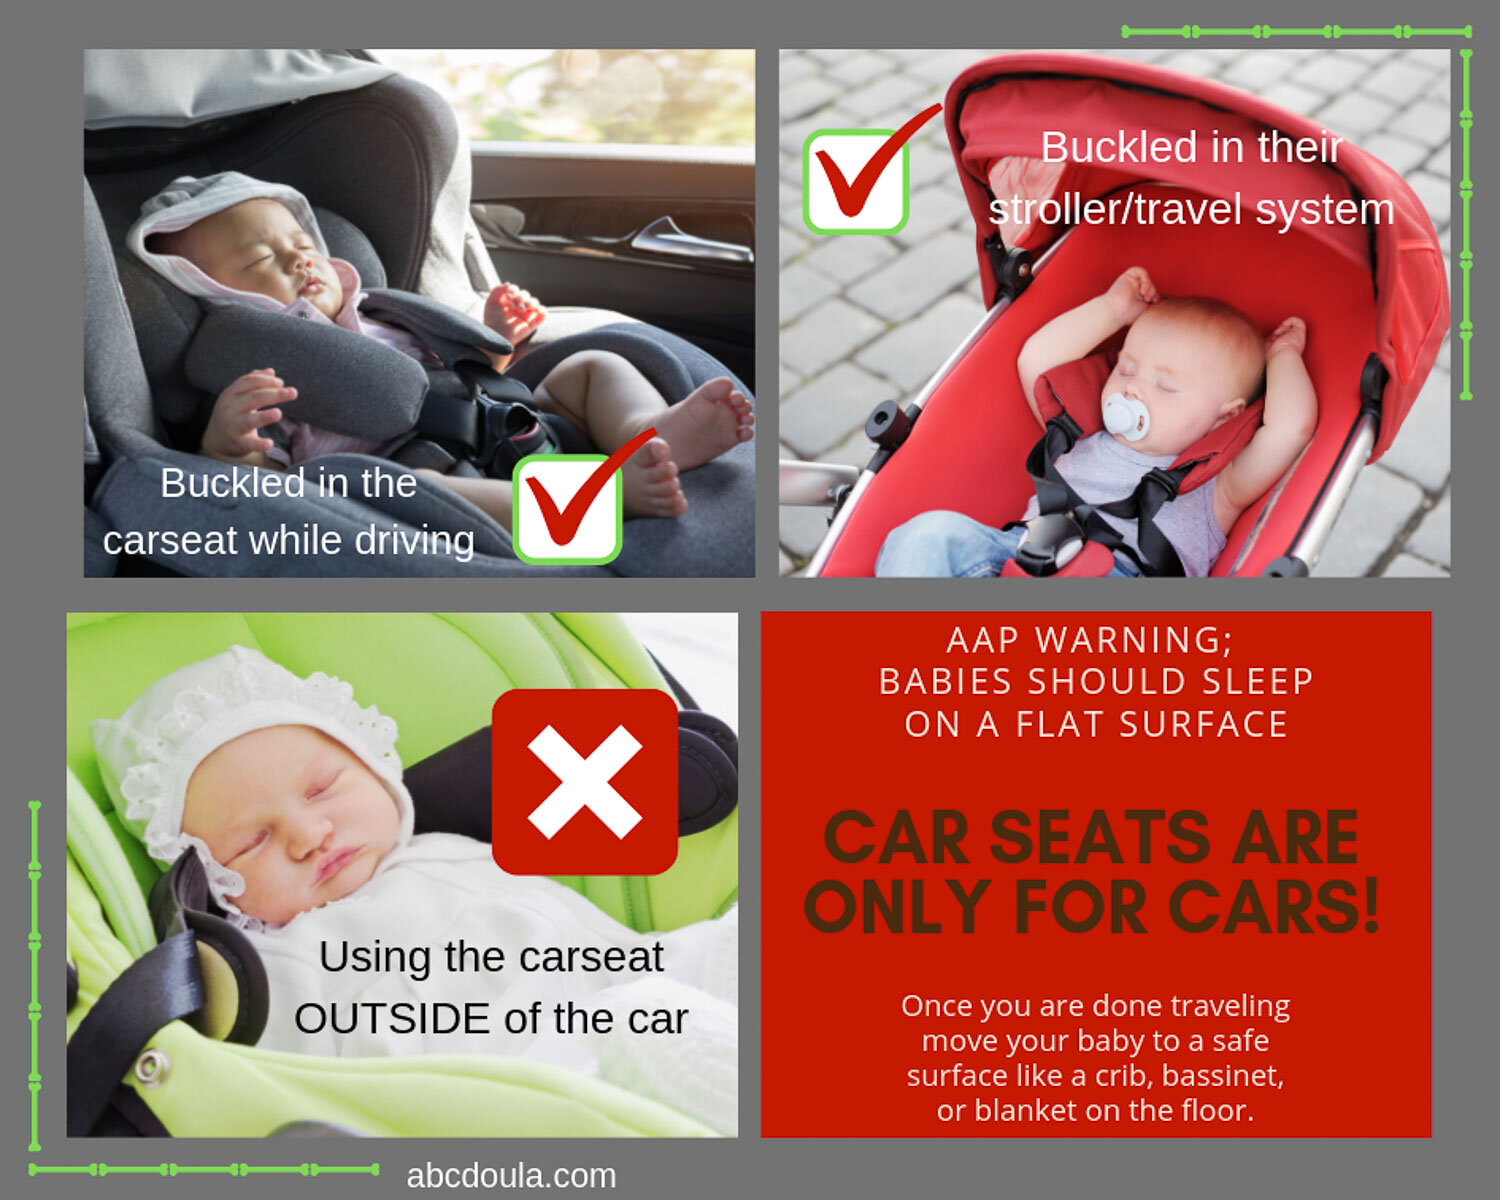 Carseat Safety Abc Doula Newborn Care